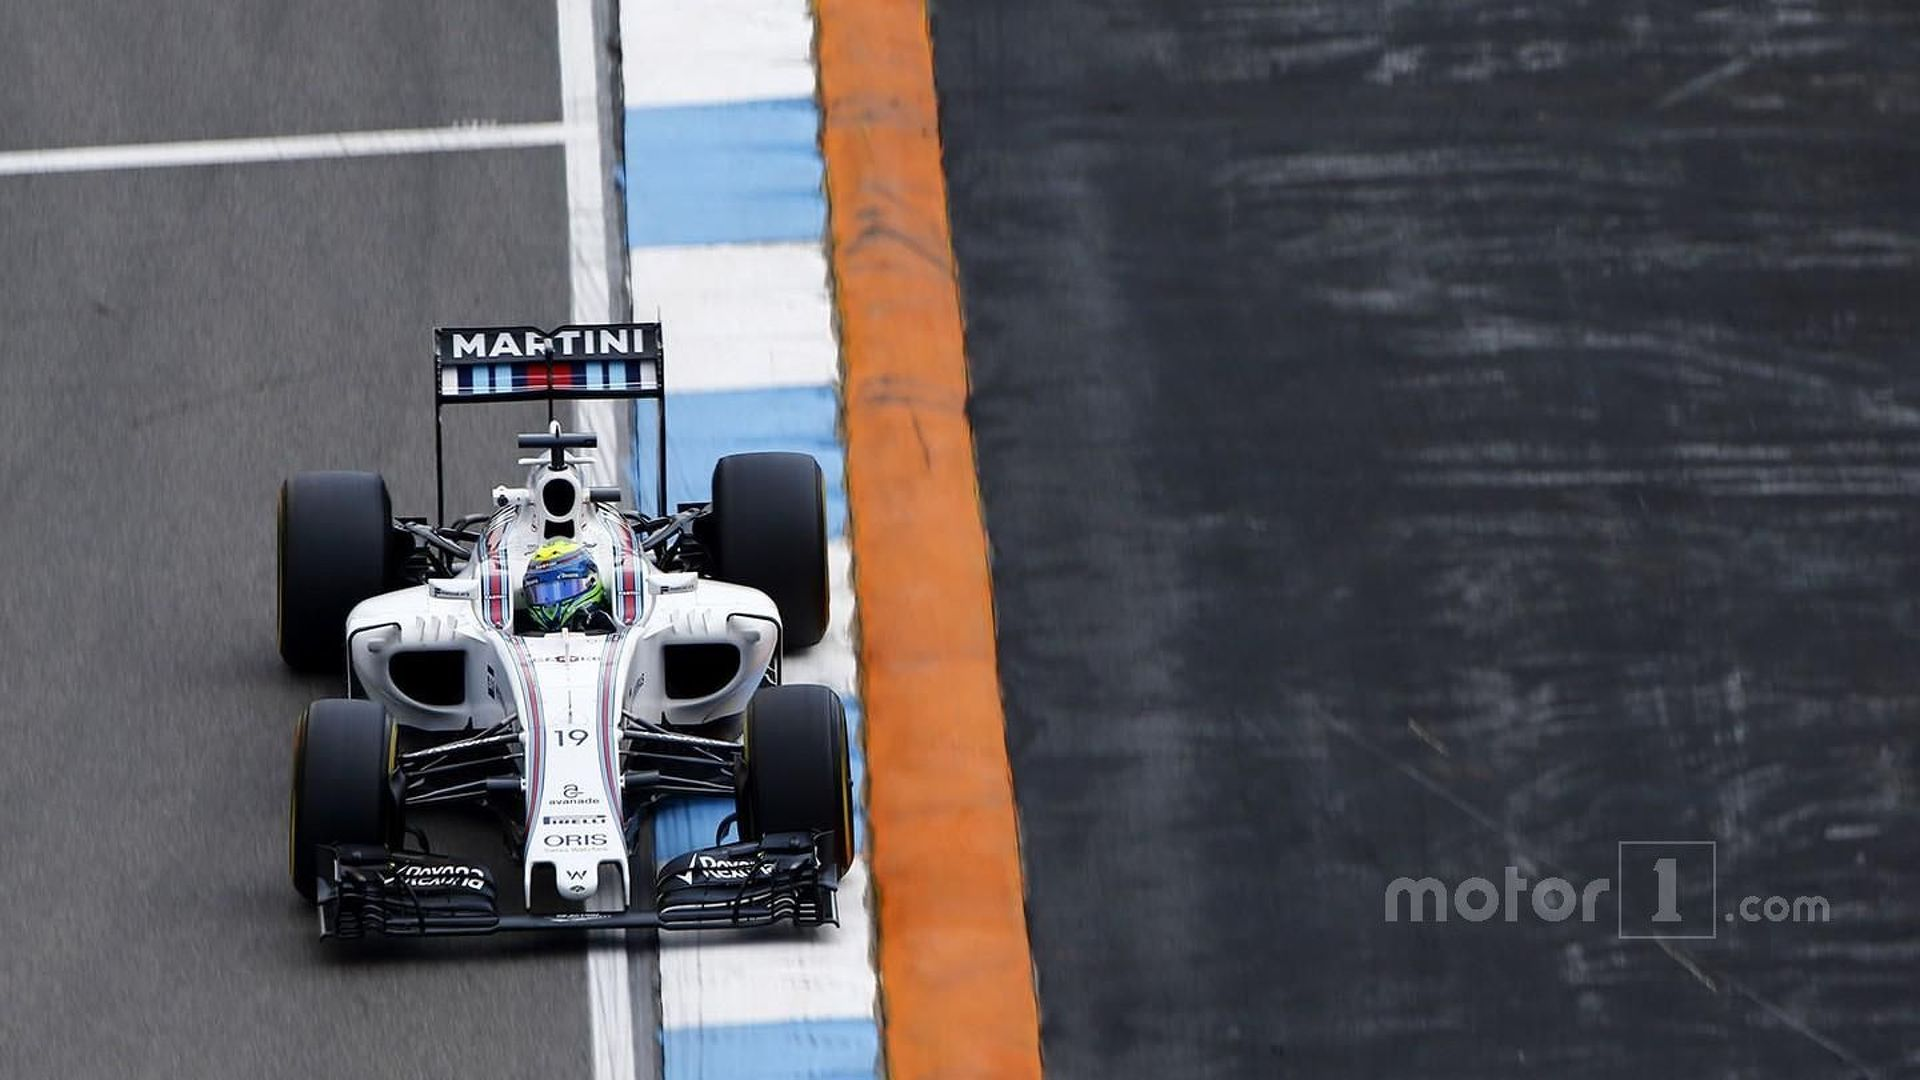 End of track limits would send out wrong message